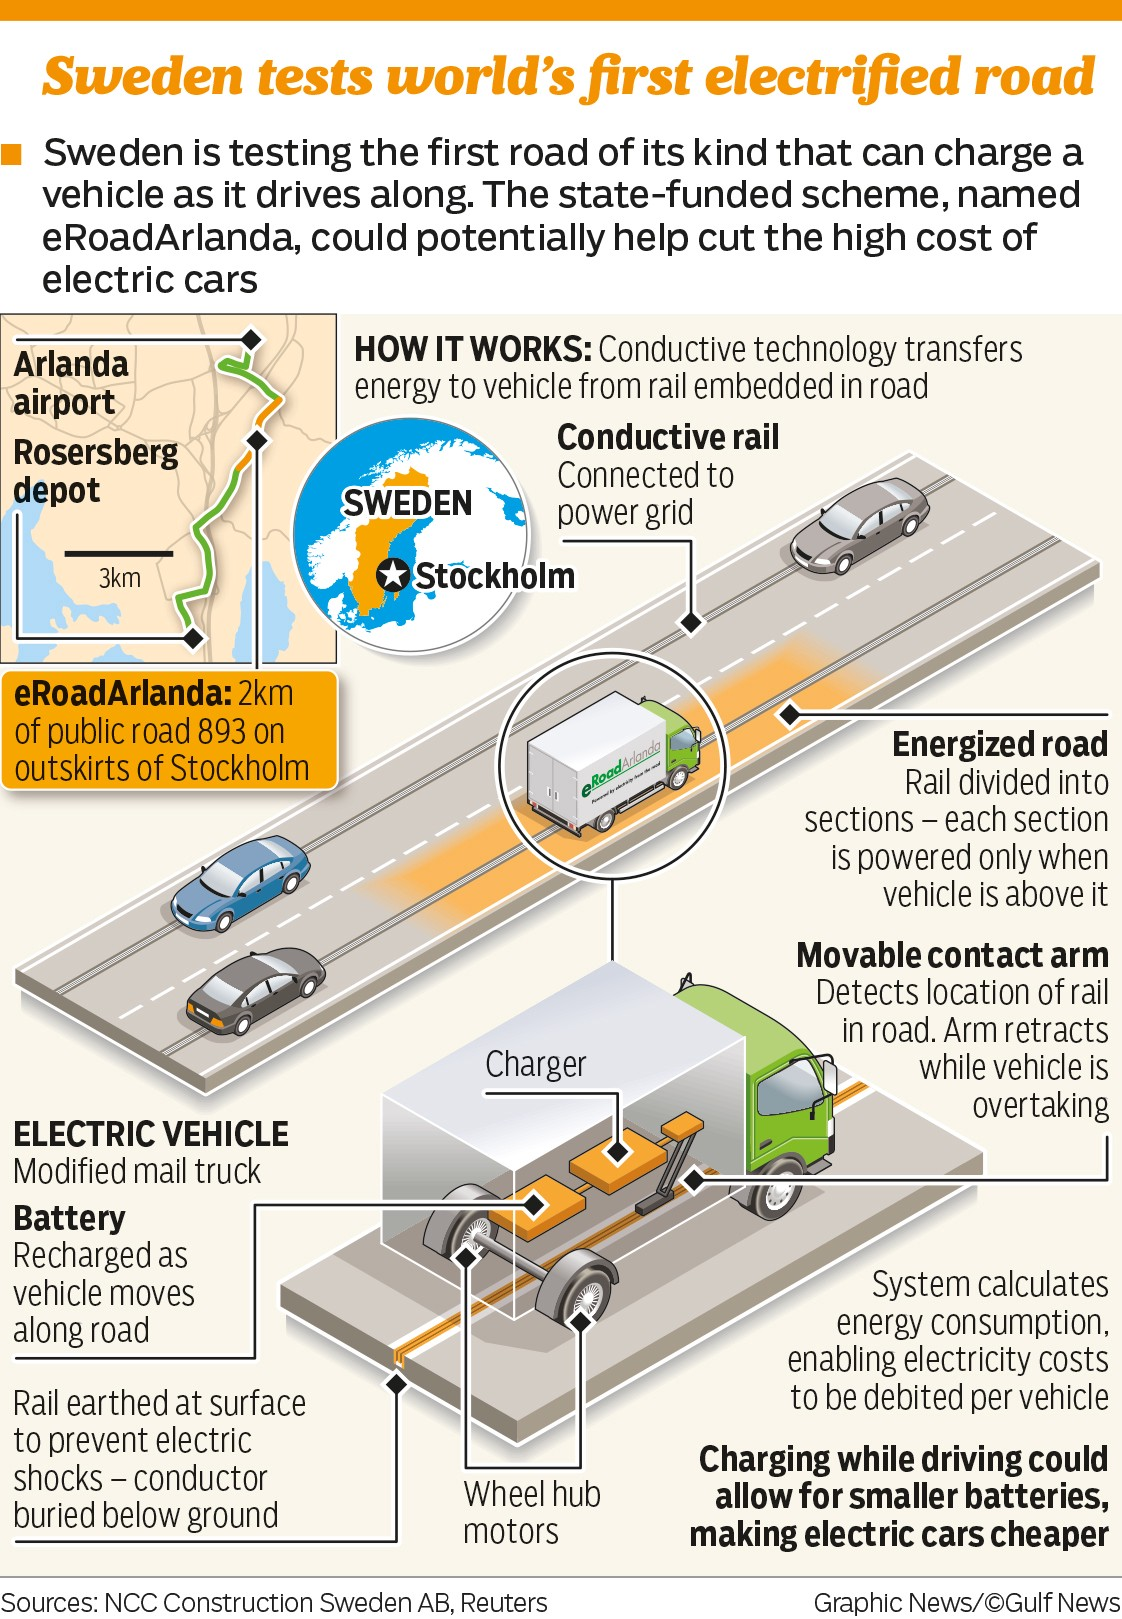 New Battery Technology Is Accelerating Autonomy And Saving The Electric Car Diagram Markus Fischer Spokesperson For State Owned Energy Company Vattenfall Describes Such Roads Will Allow Vehicles To Move Long Distances Without